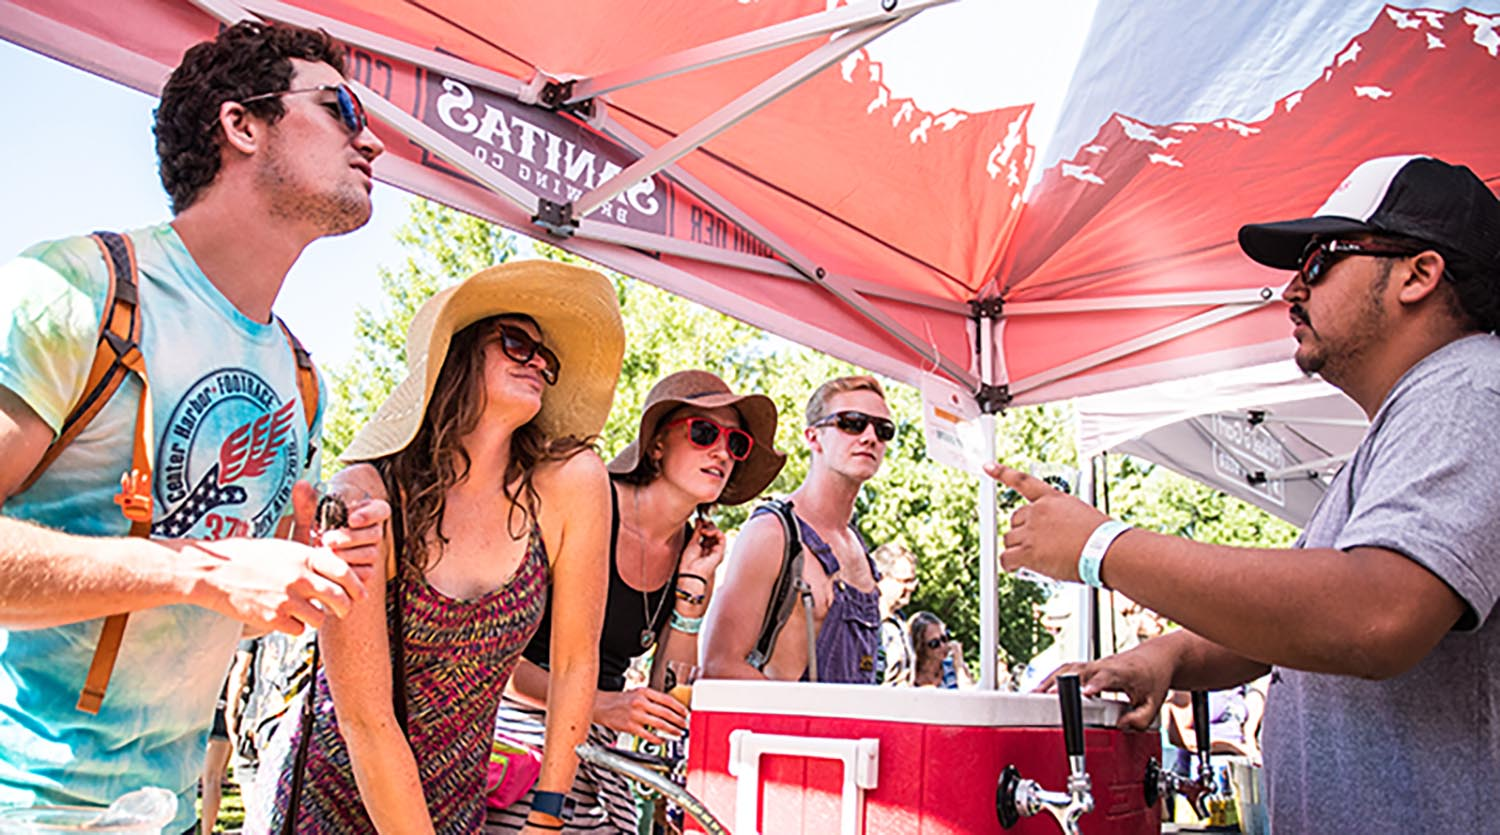 Boulder Craft Beer Festival Weekly Events August 17 - 23